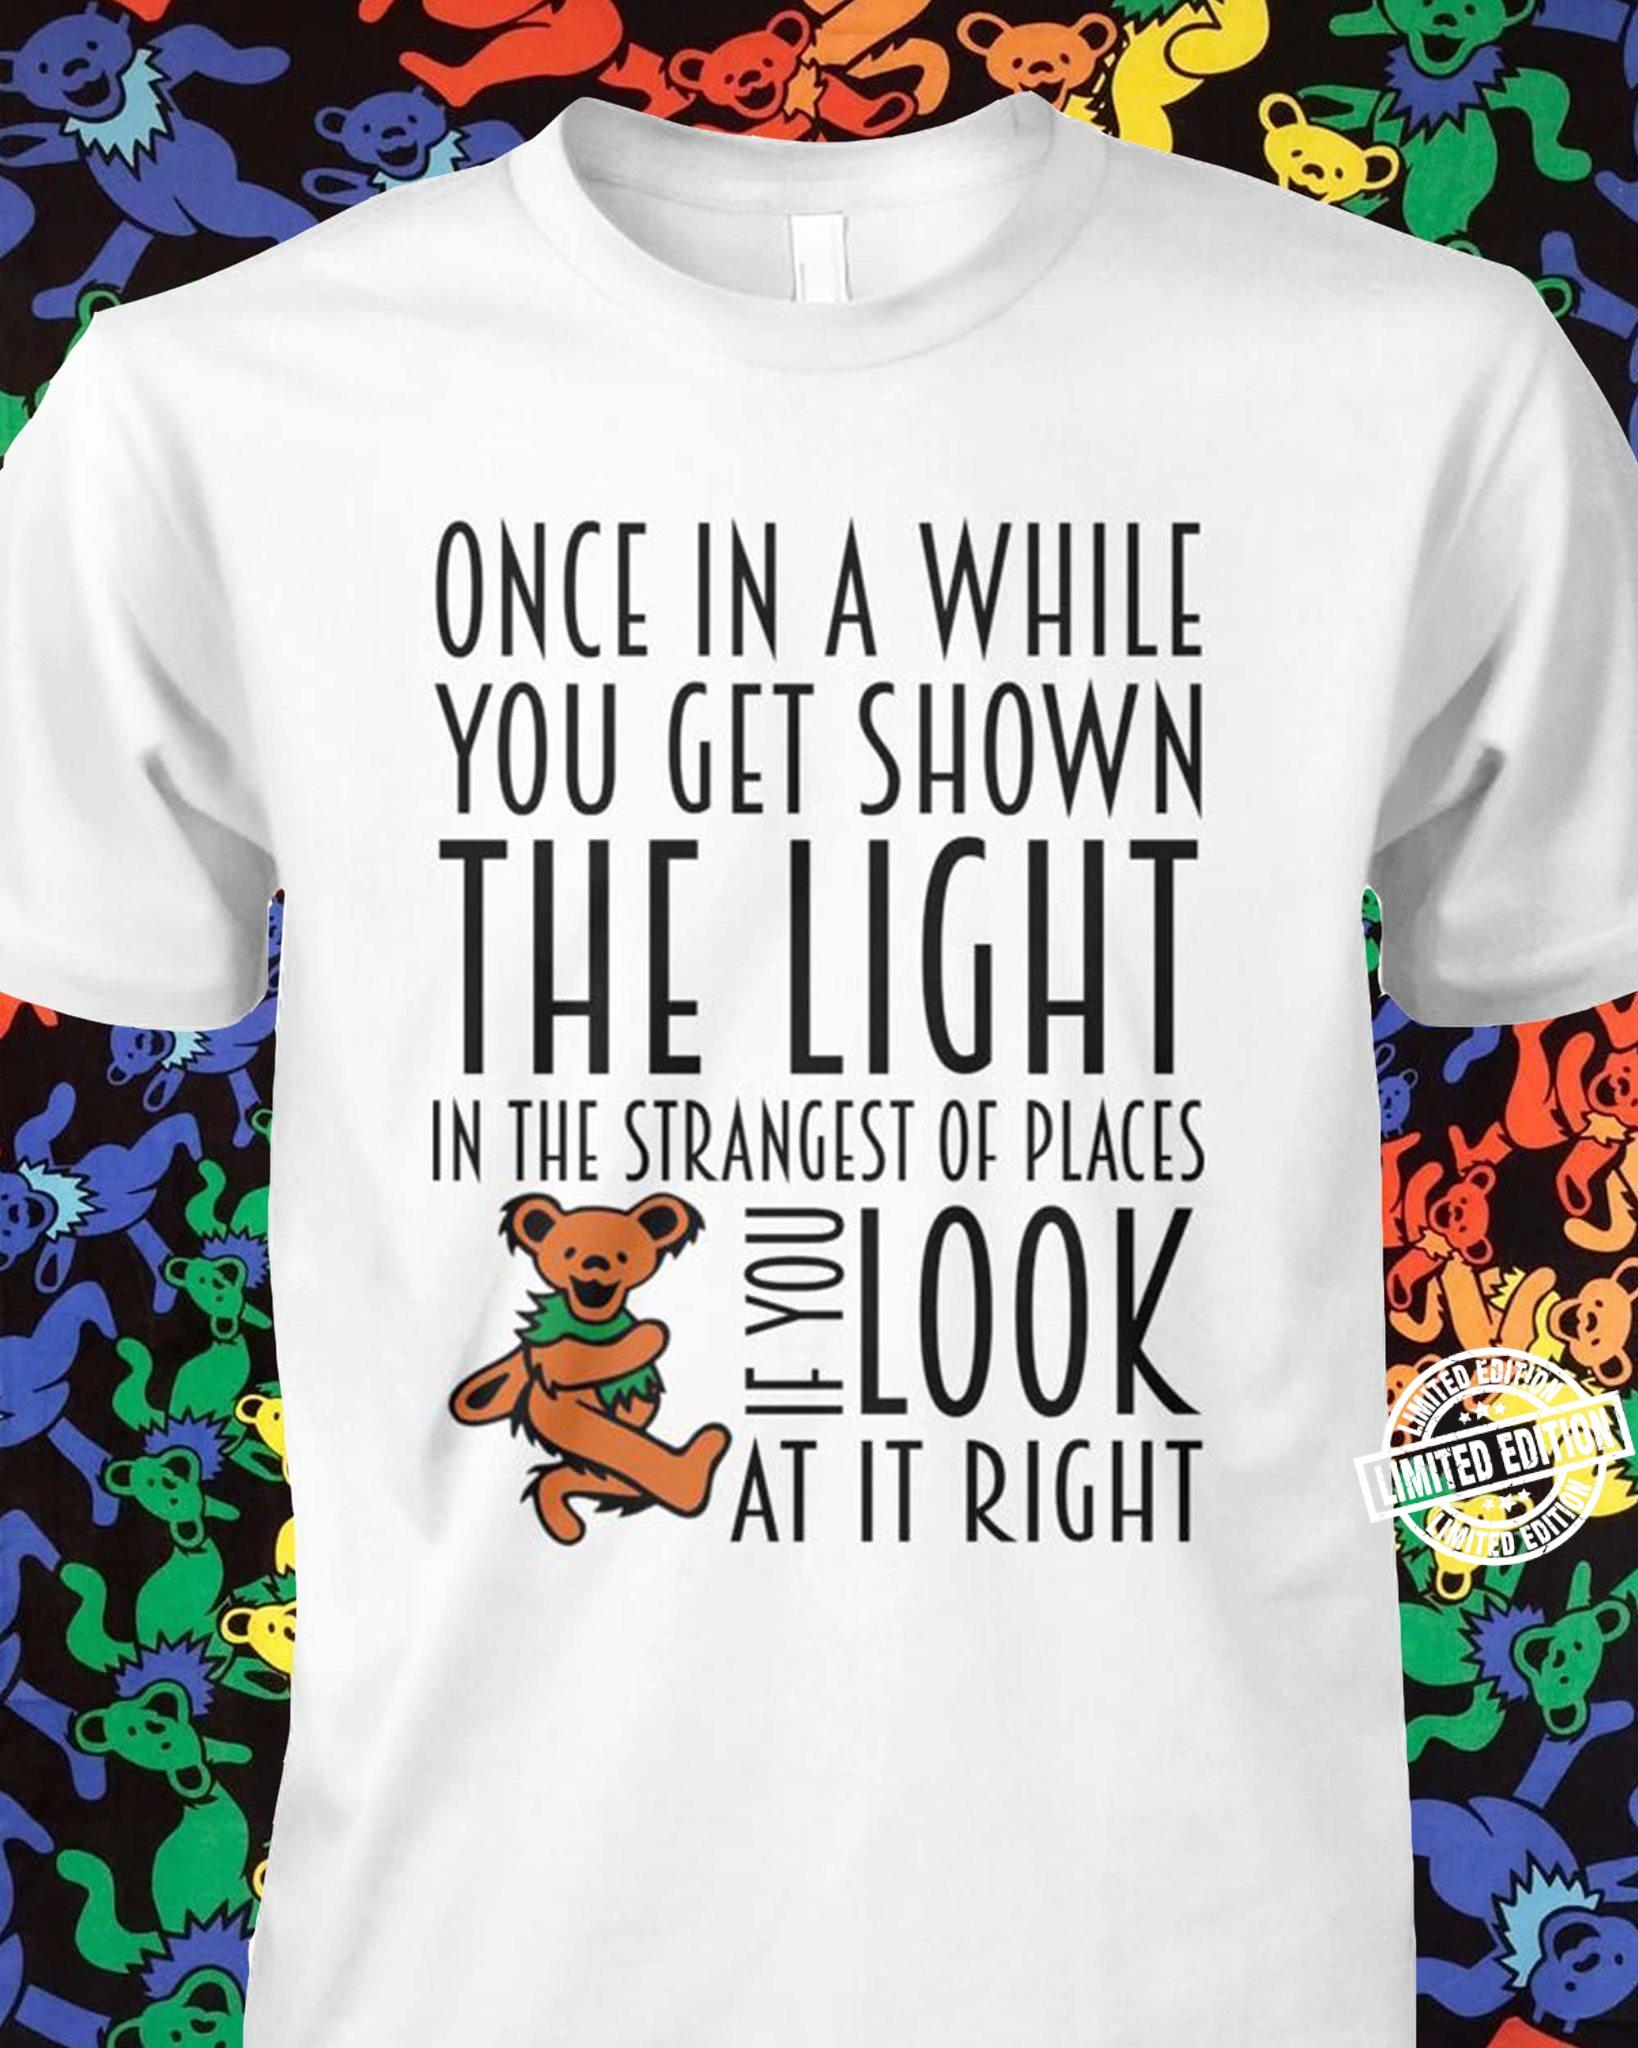 Once in a while you get shown the light in the strangest of places shirt